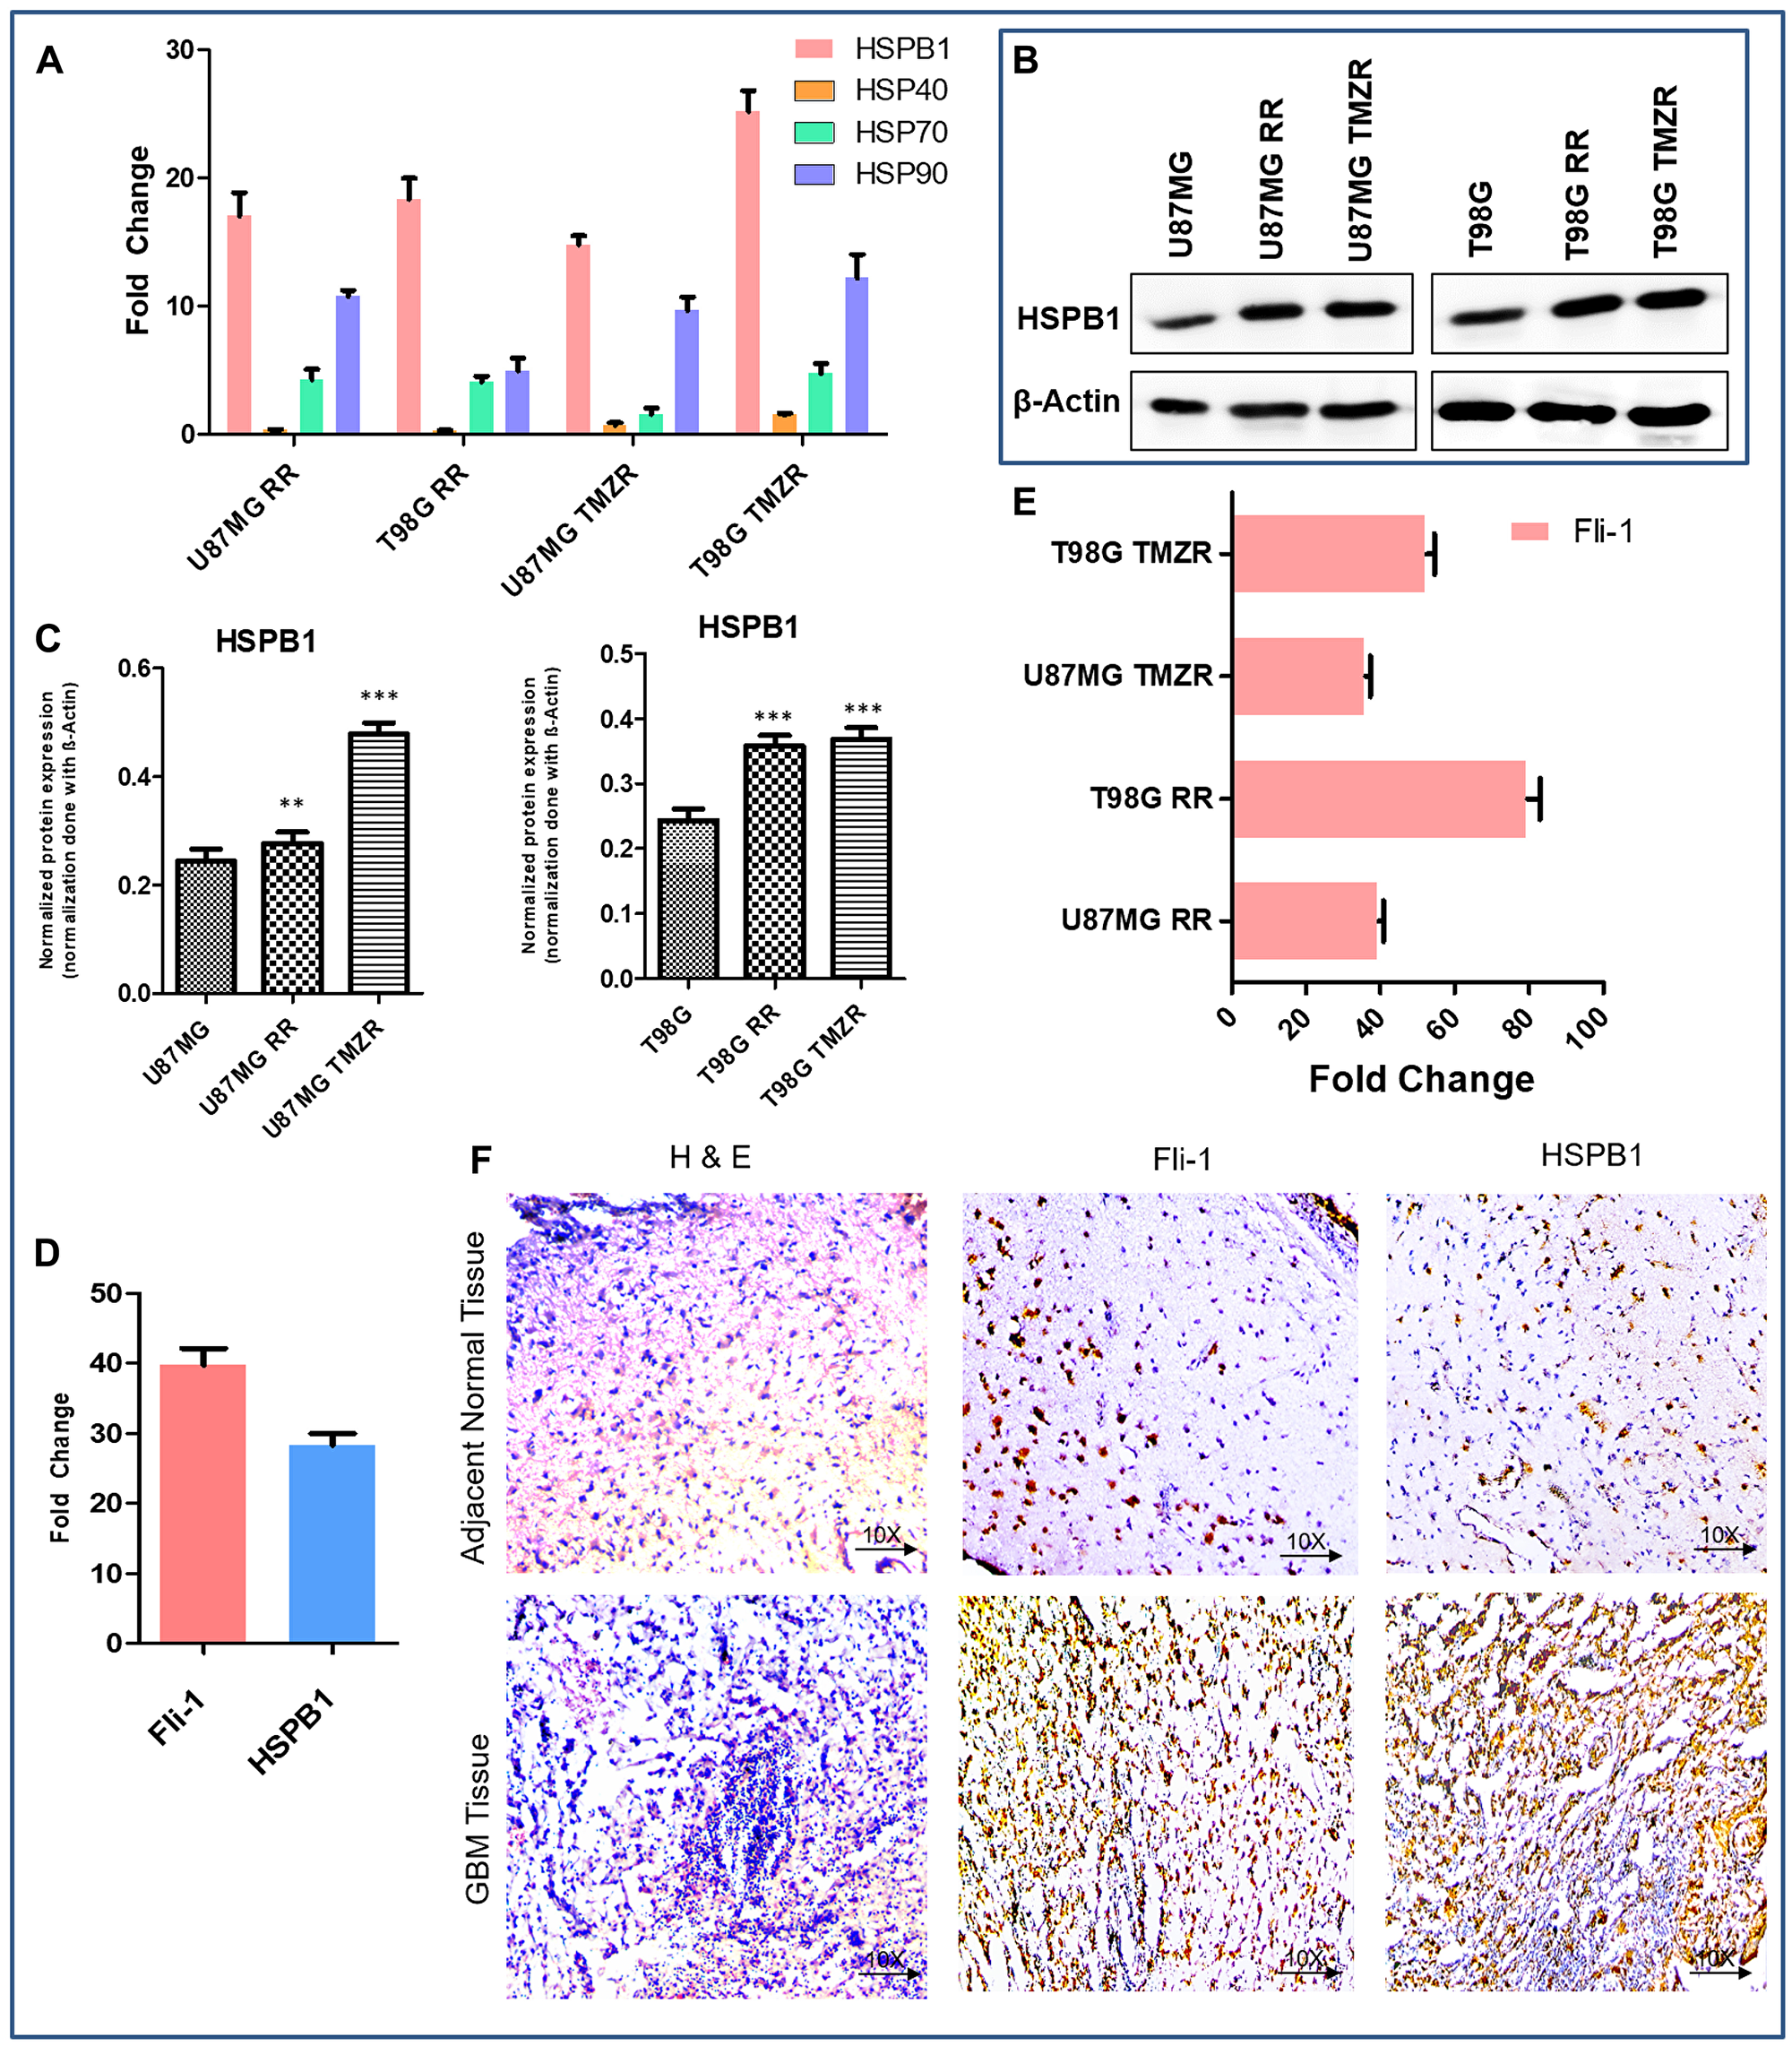 Comparative expression pattern of different HSPs and Fli-1 in GBM.